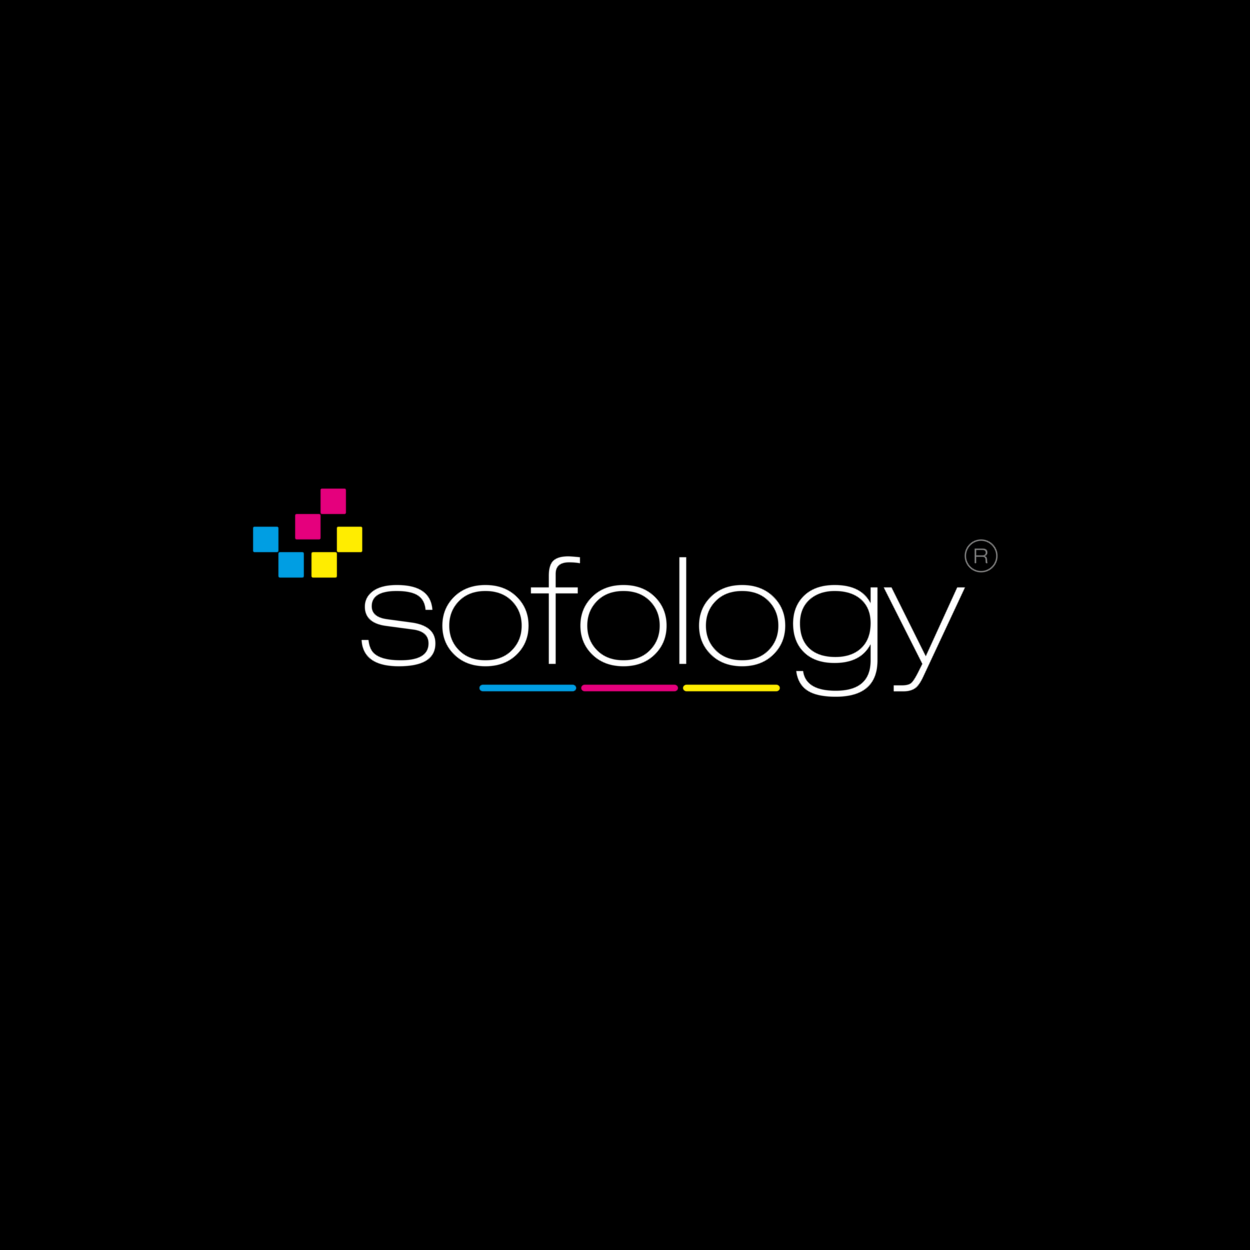 Sofology Wednesbury - Wednesbury, West Midlands WS10 9QY - 03444 818035 | ShowMeLocal.com